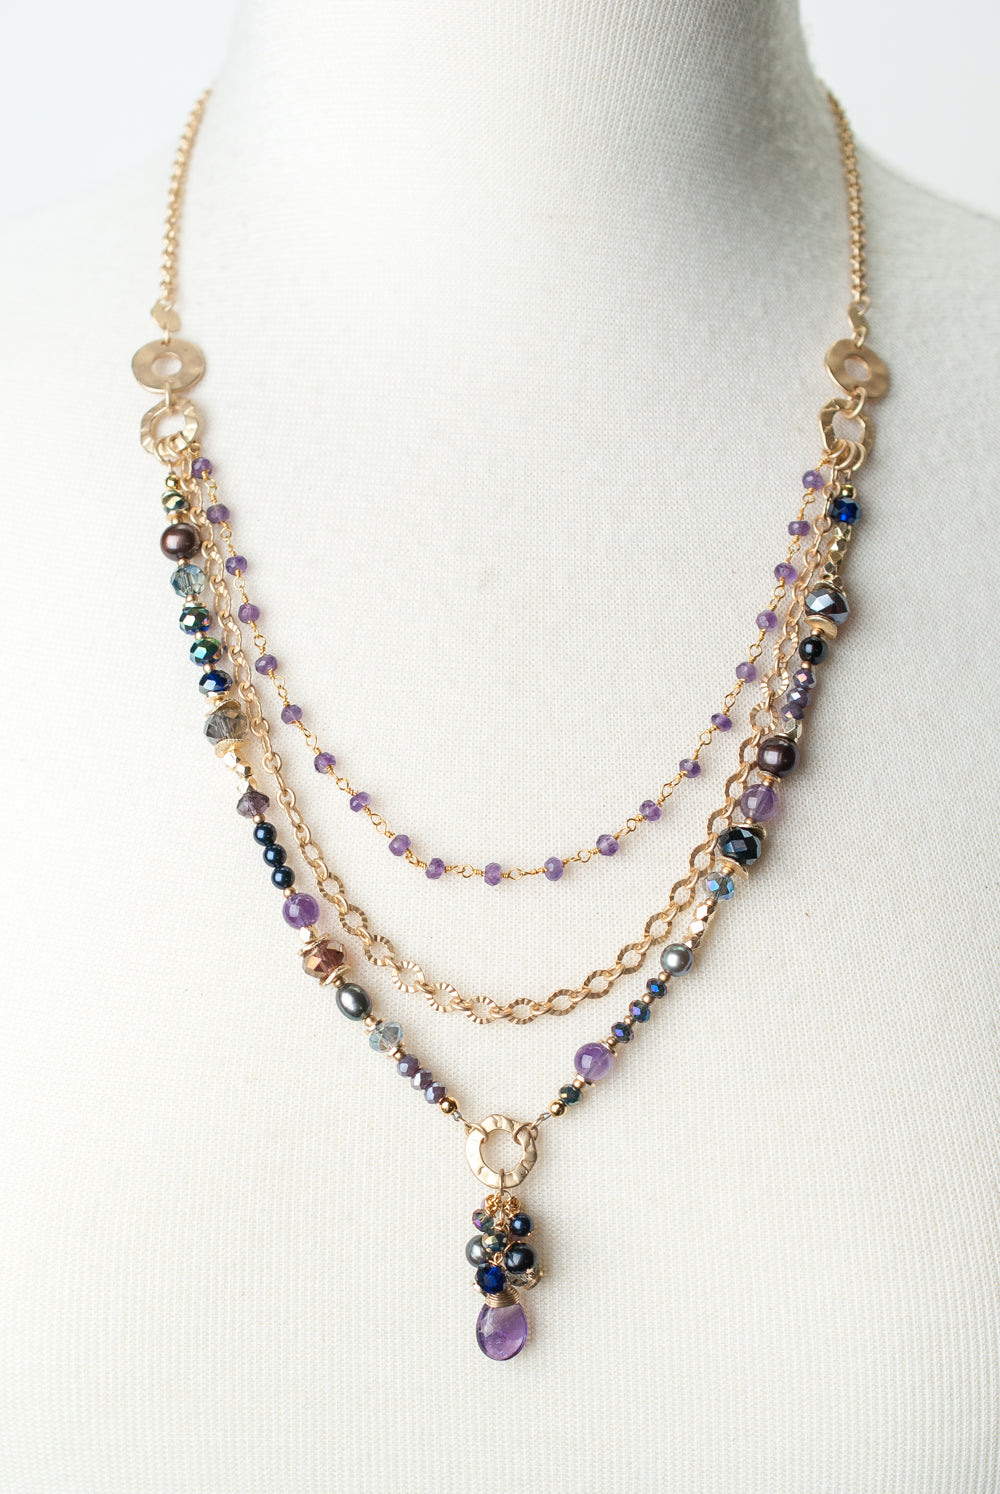 "Midnight 20-22"" Amethyst, Czech Glass, Pearl Multistrand Necklace"